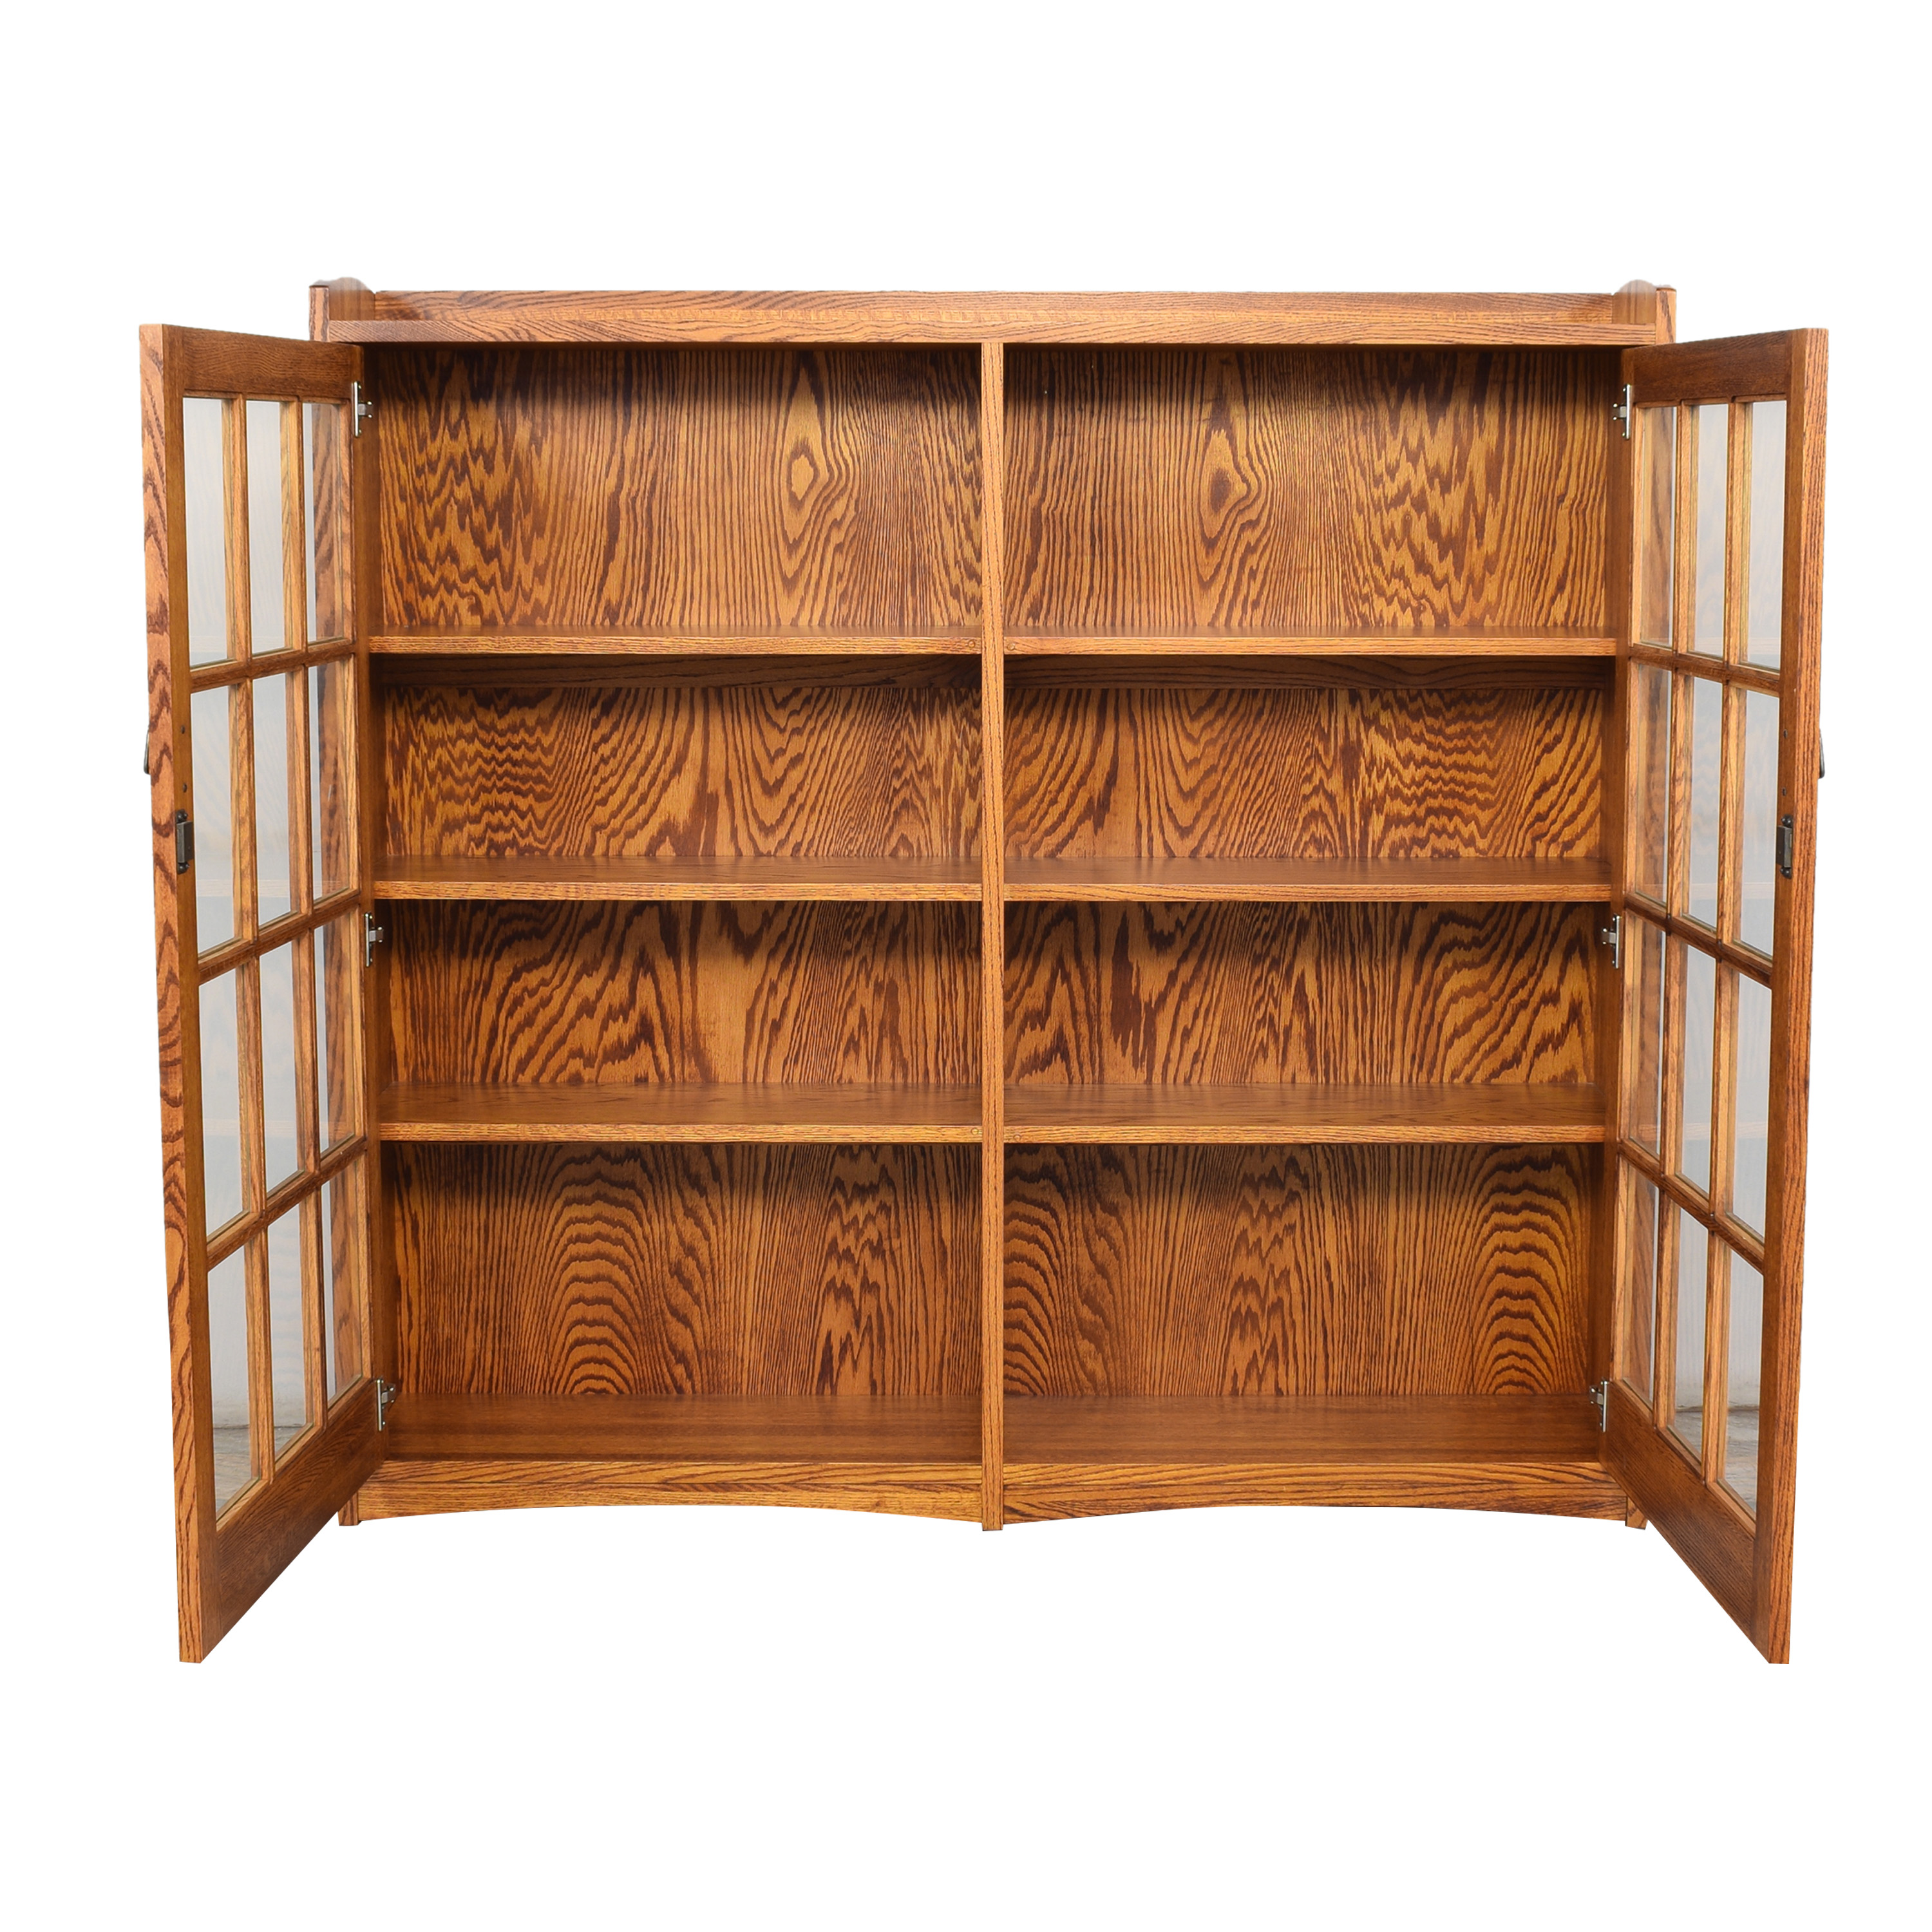 Restoration Hardware Mission Double Barrister Bookcase / Bookcases & Shelving